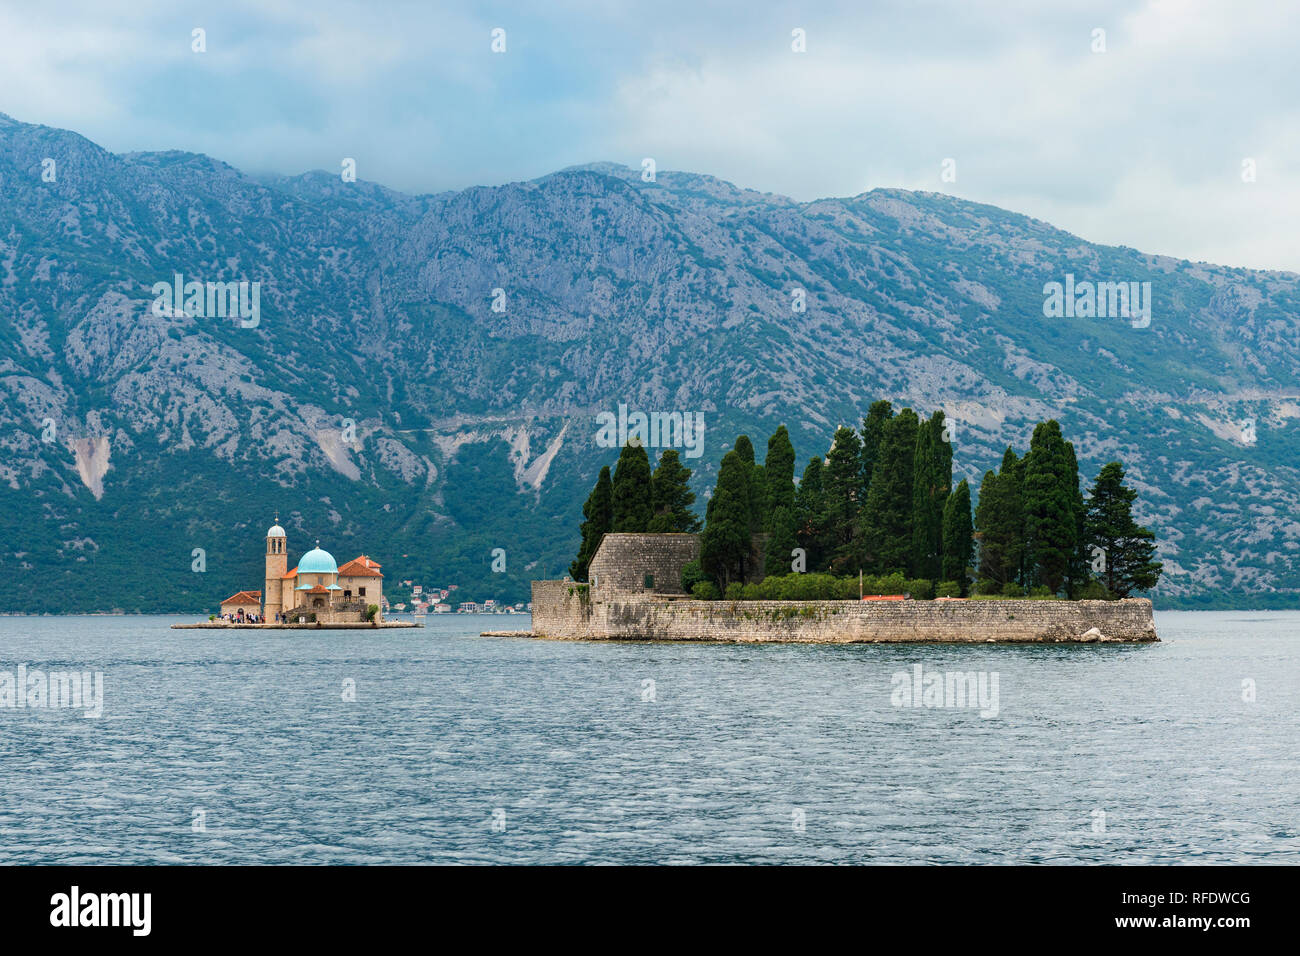 Saint Georges and Our Lady of the Rocks Islands, Kotor Bay, Perast, Montenegro - Stock Image